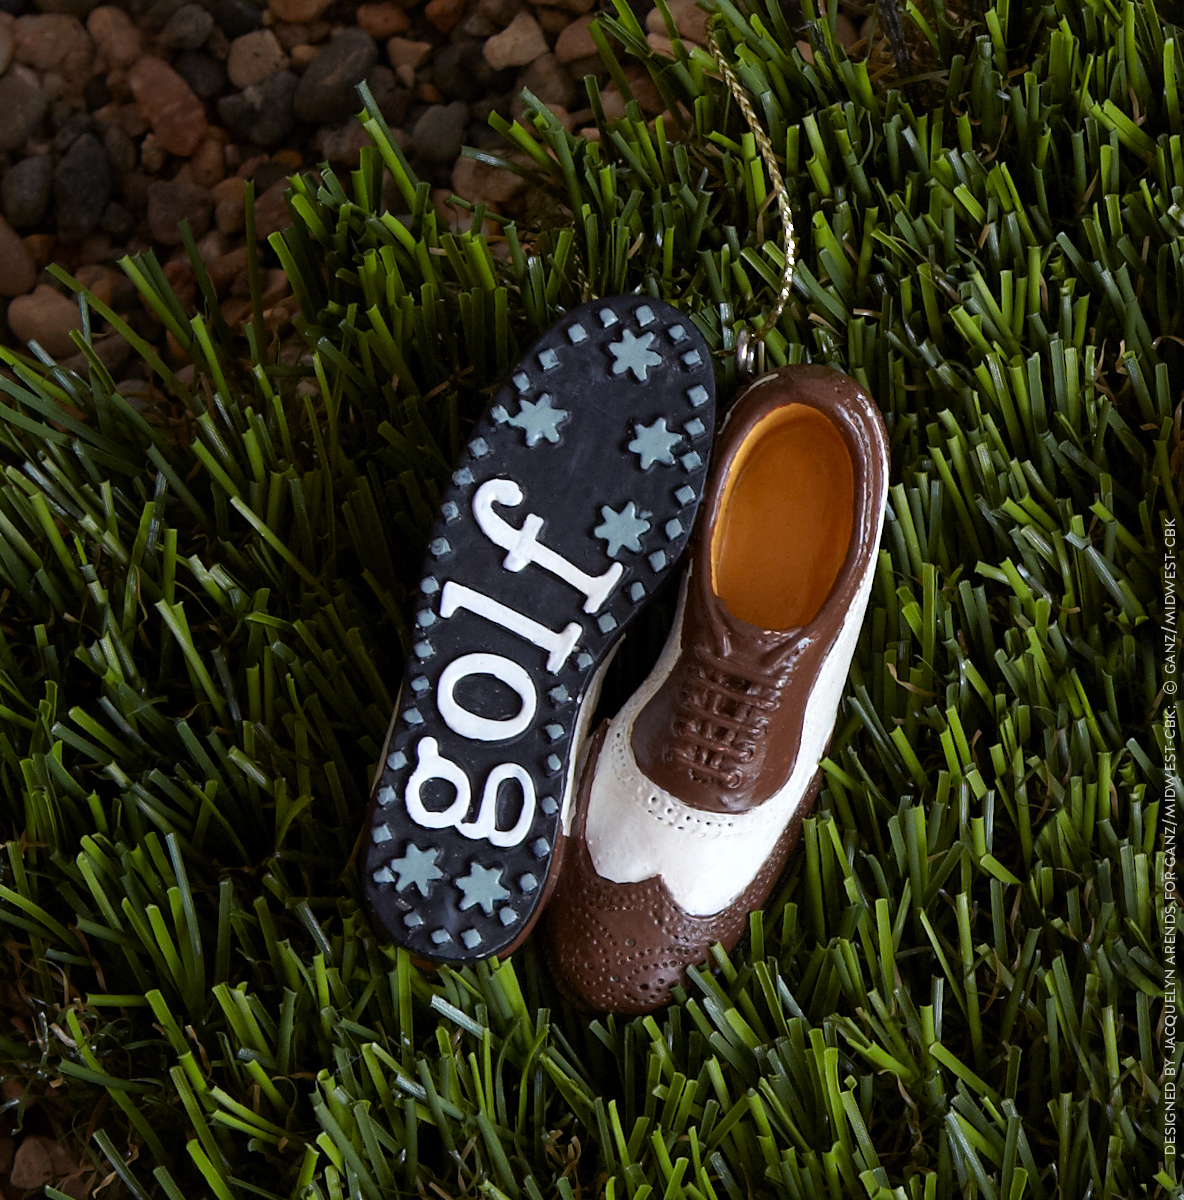 Styled shoot of Specialty Ornaments Golf Shoes ornaments designed by Jacquelyn Arends; © Ganz/Midwest-CBK 2019